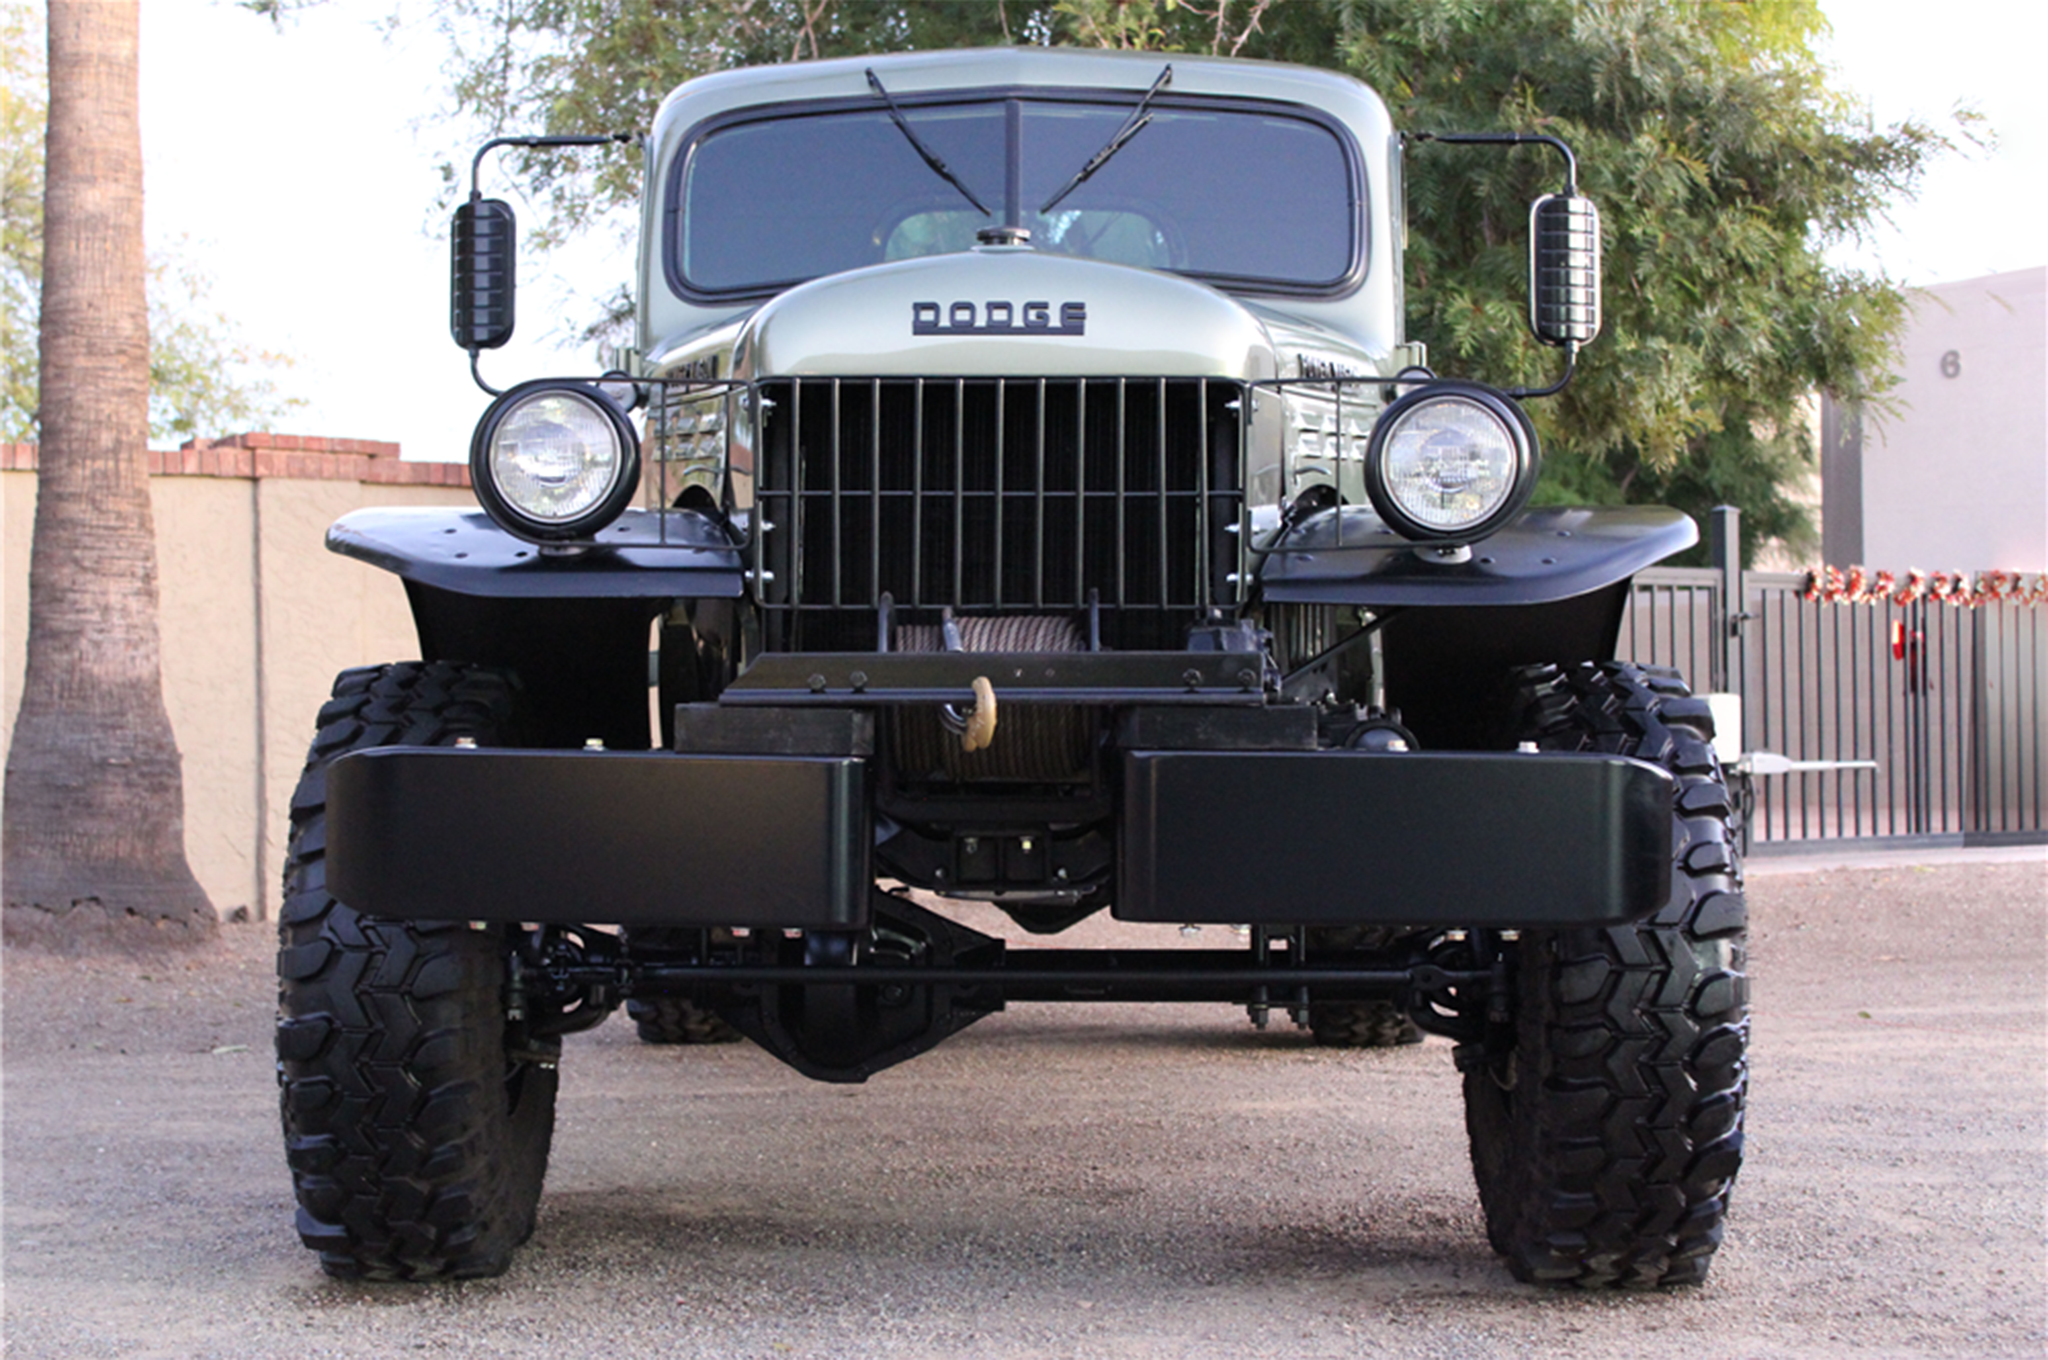 Just Listed Two Very Different Flavors of Vintage Dodge Power Wagon